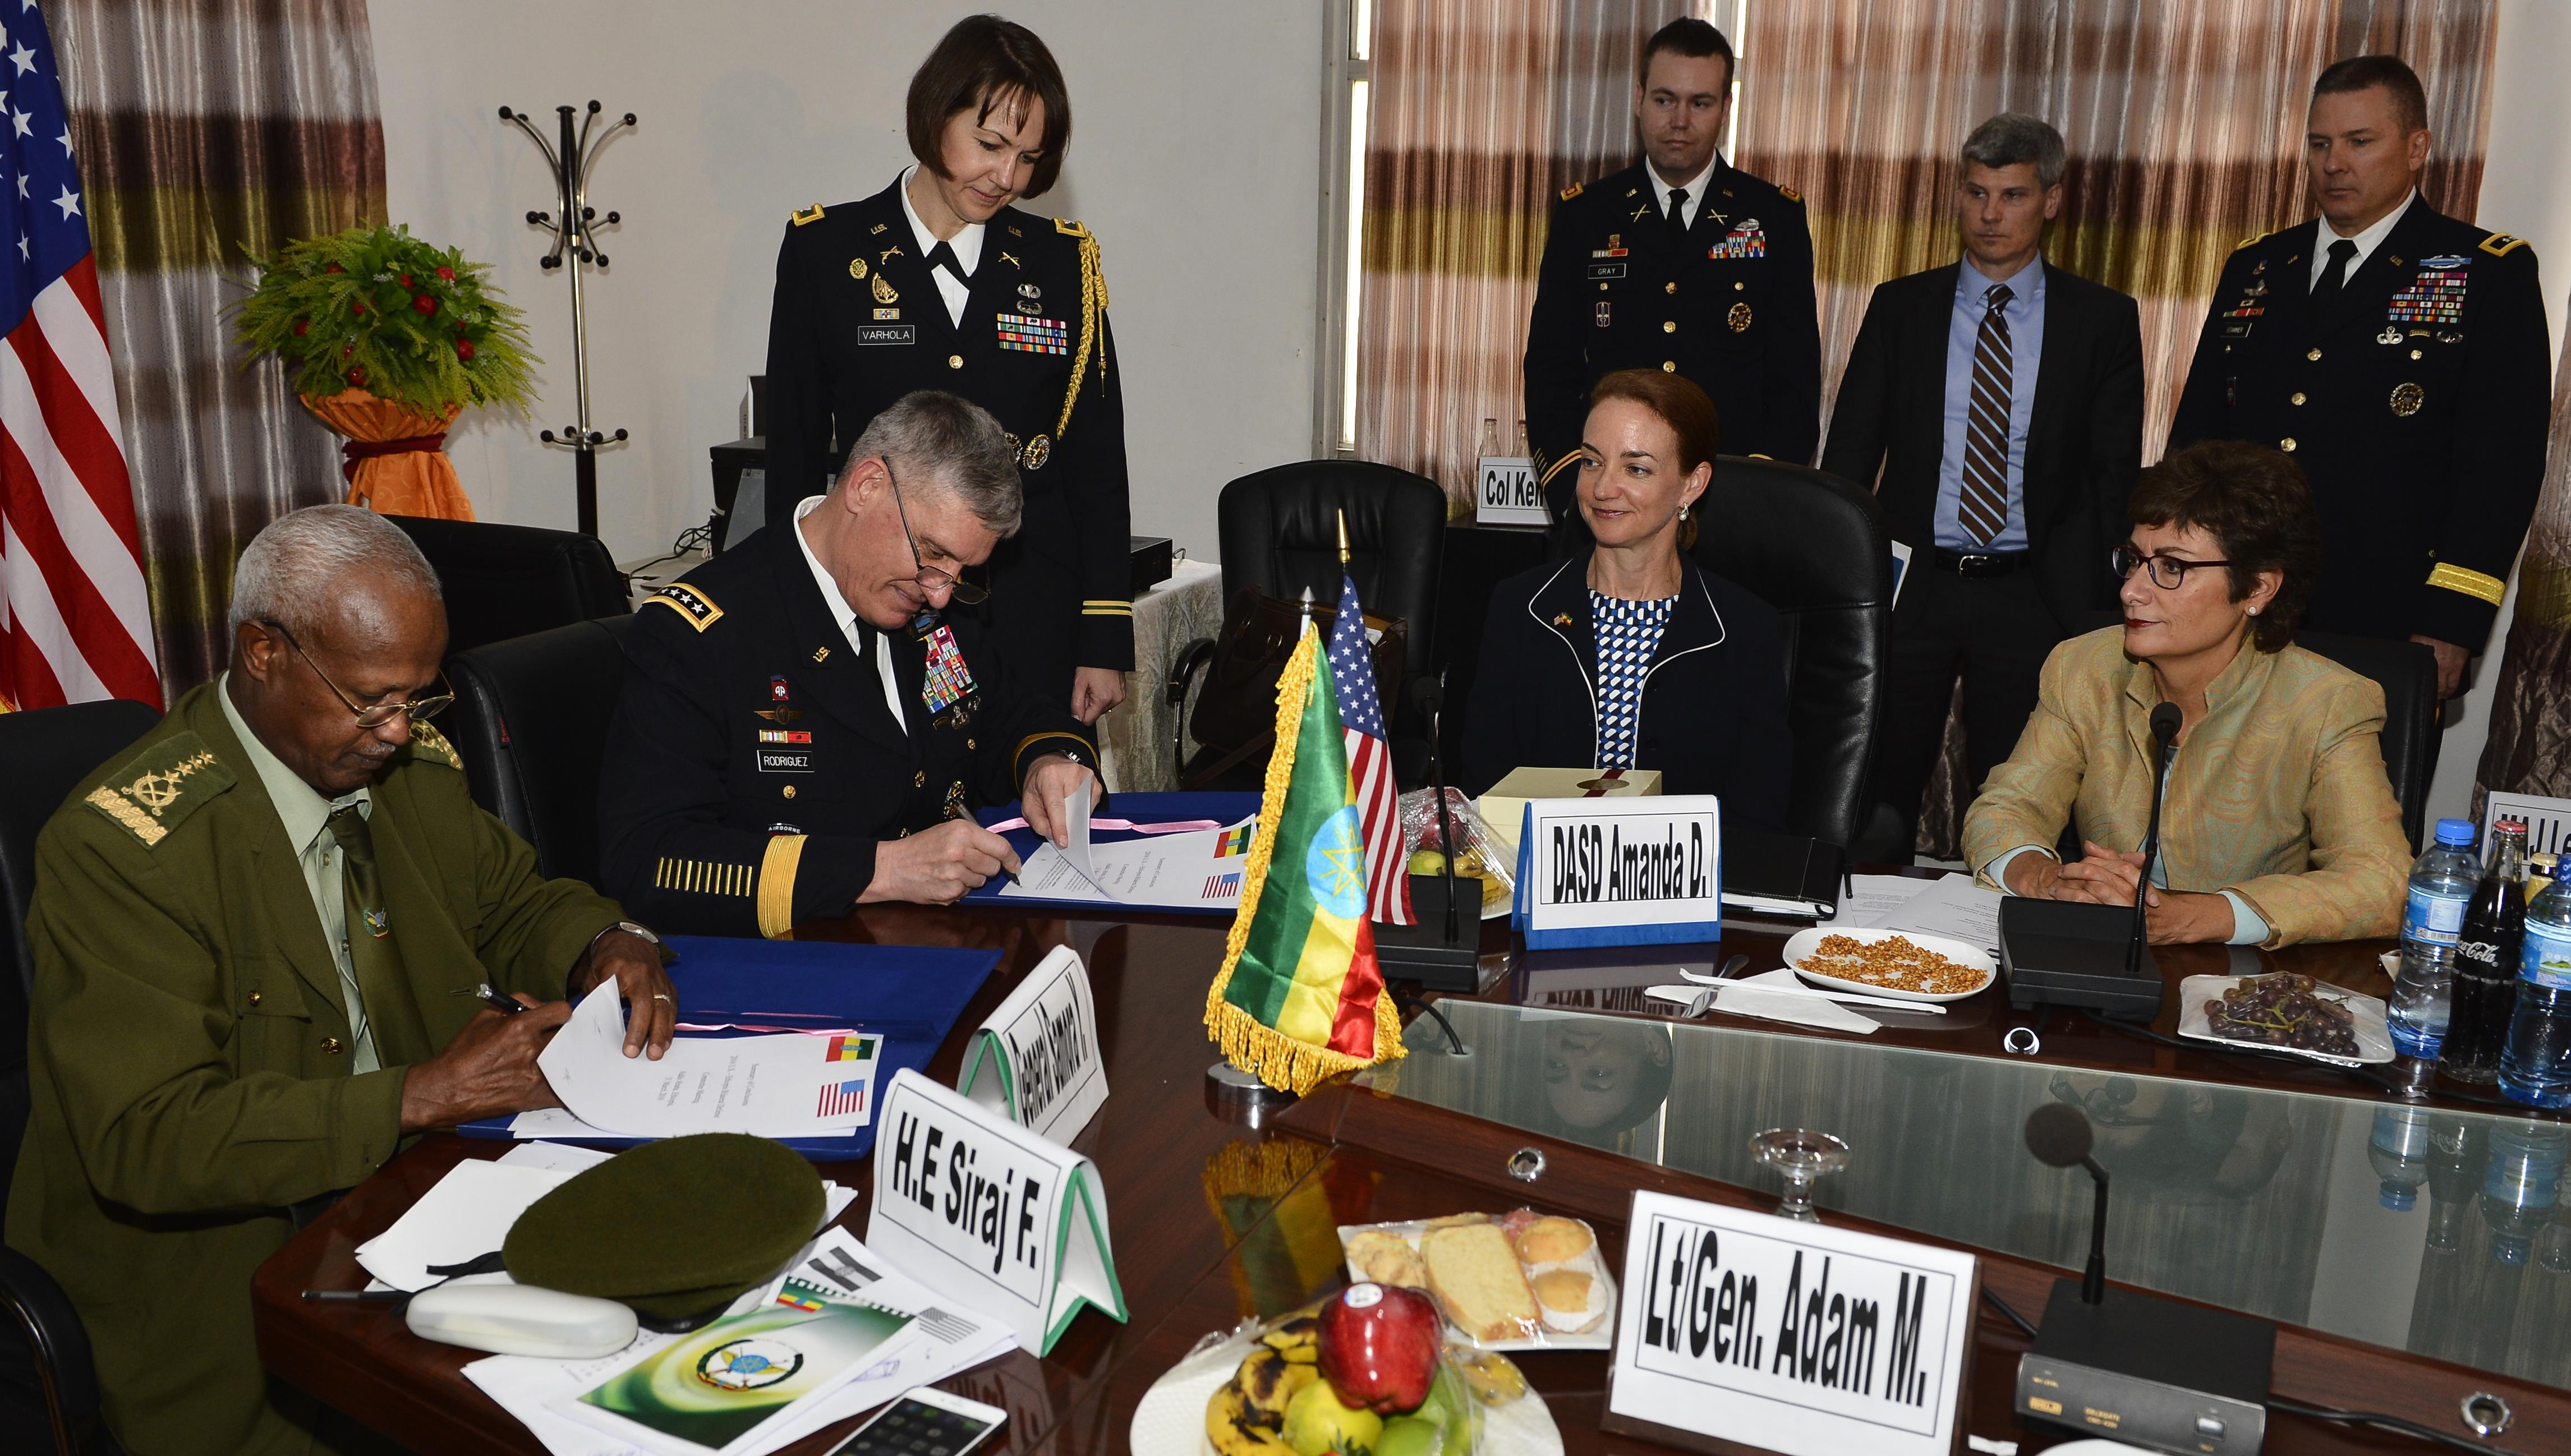 Gen. David Rodriguez, Commander U.S. Africa Command and en. Samora Yunis, Chief of Staff Ethiopian National Defense Force sign the summary of conclusions after a Bilateral Defense Committee (BDC) meeting in Addis Ababa, Ethiopia, March 31, 2016. The new agreement out lines the cross-exchange of logistics, services, supplies and support, as well as a way forward for the Africa Data-Sharing Network and combat engineering. (U.S. Air Force photo by Tech. Sgt. Dan DeCook)